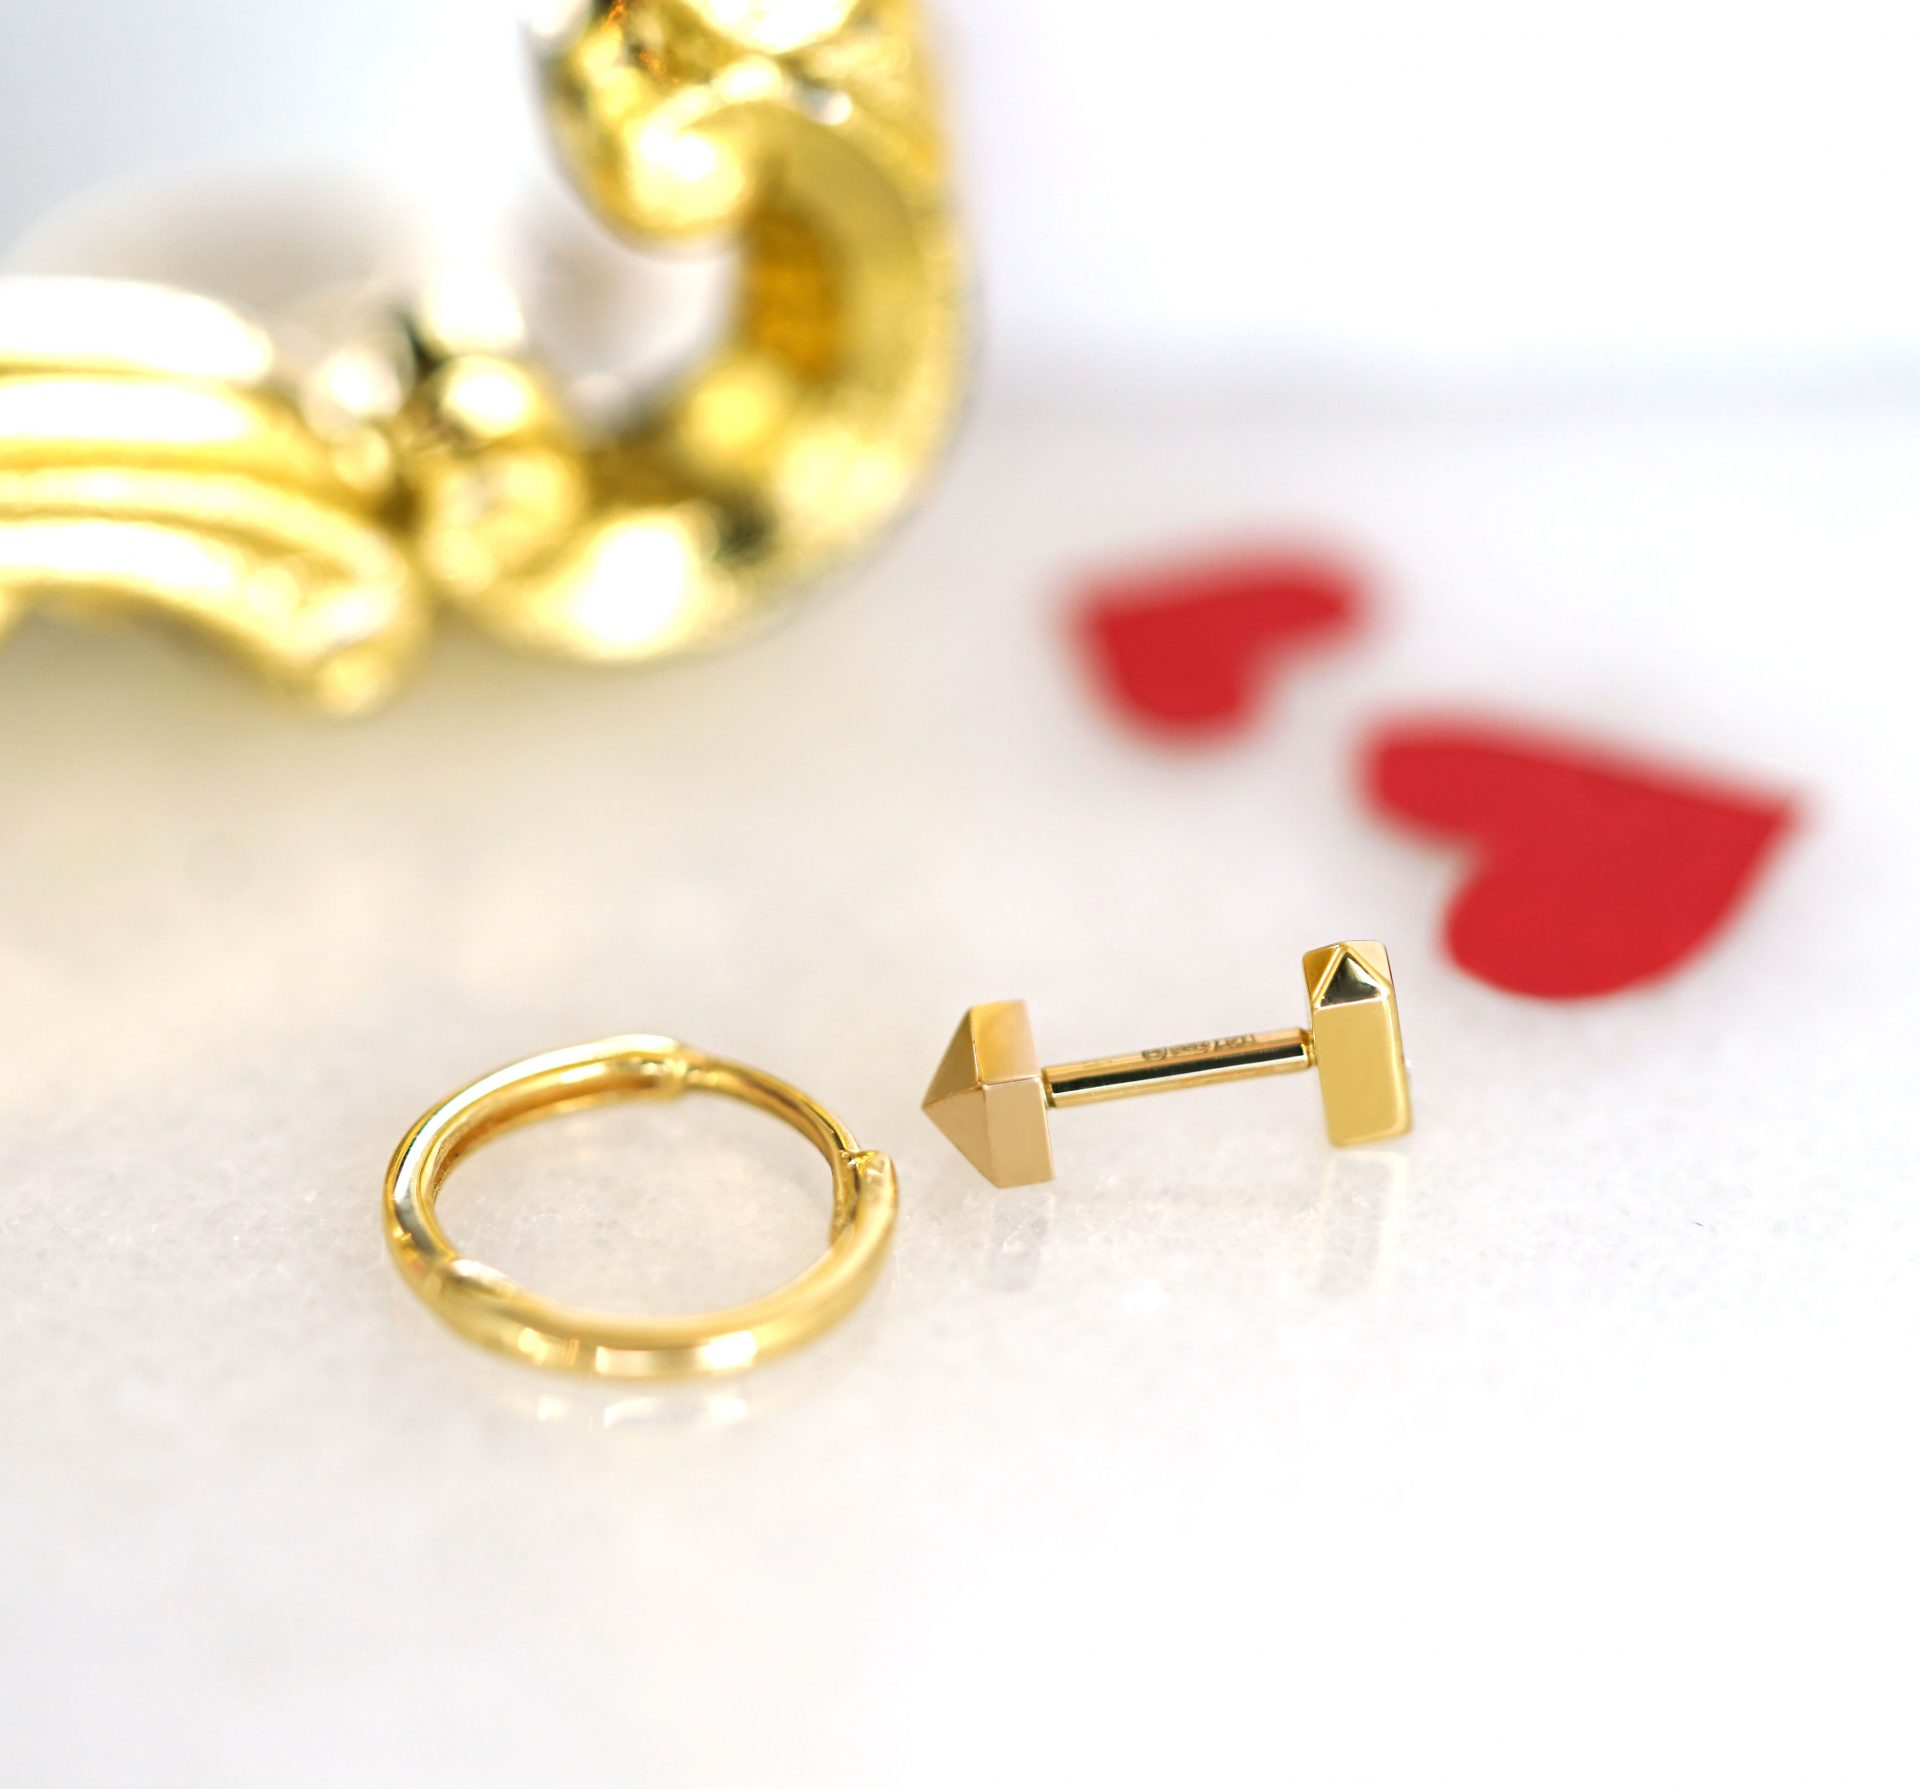 piercing-earrings-multibuy-option-set-valentines-day-gift-for-her-2021